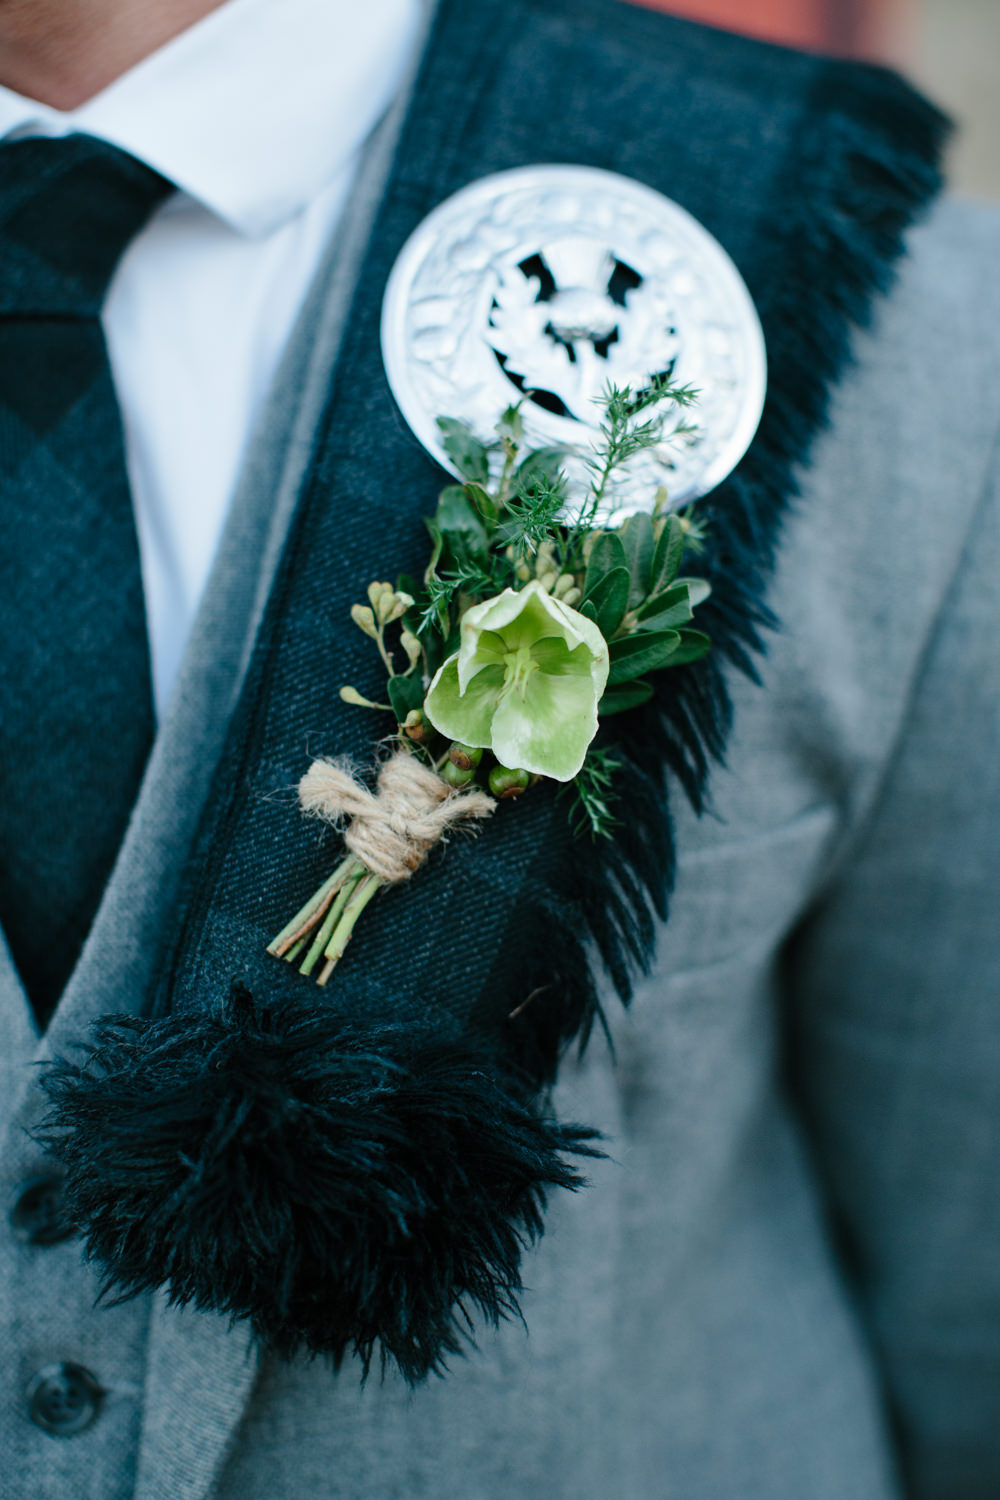 Rustic Barn Winter Wedding at Kinkell Byre nr. St Andrew\'s in Scotland